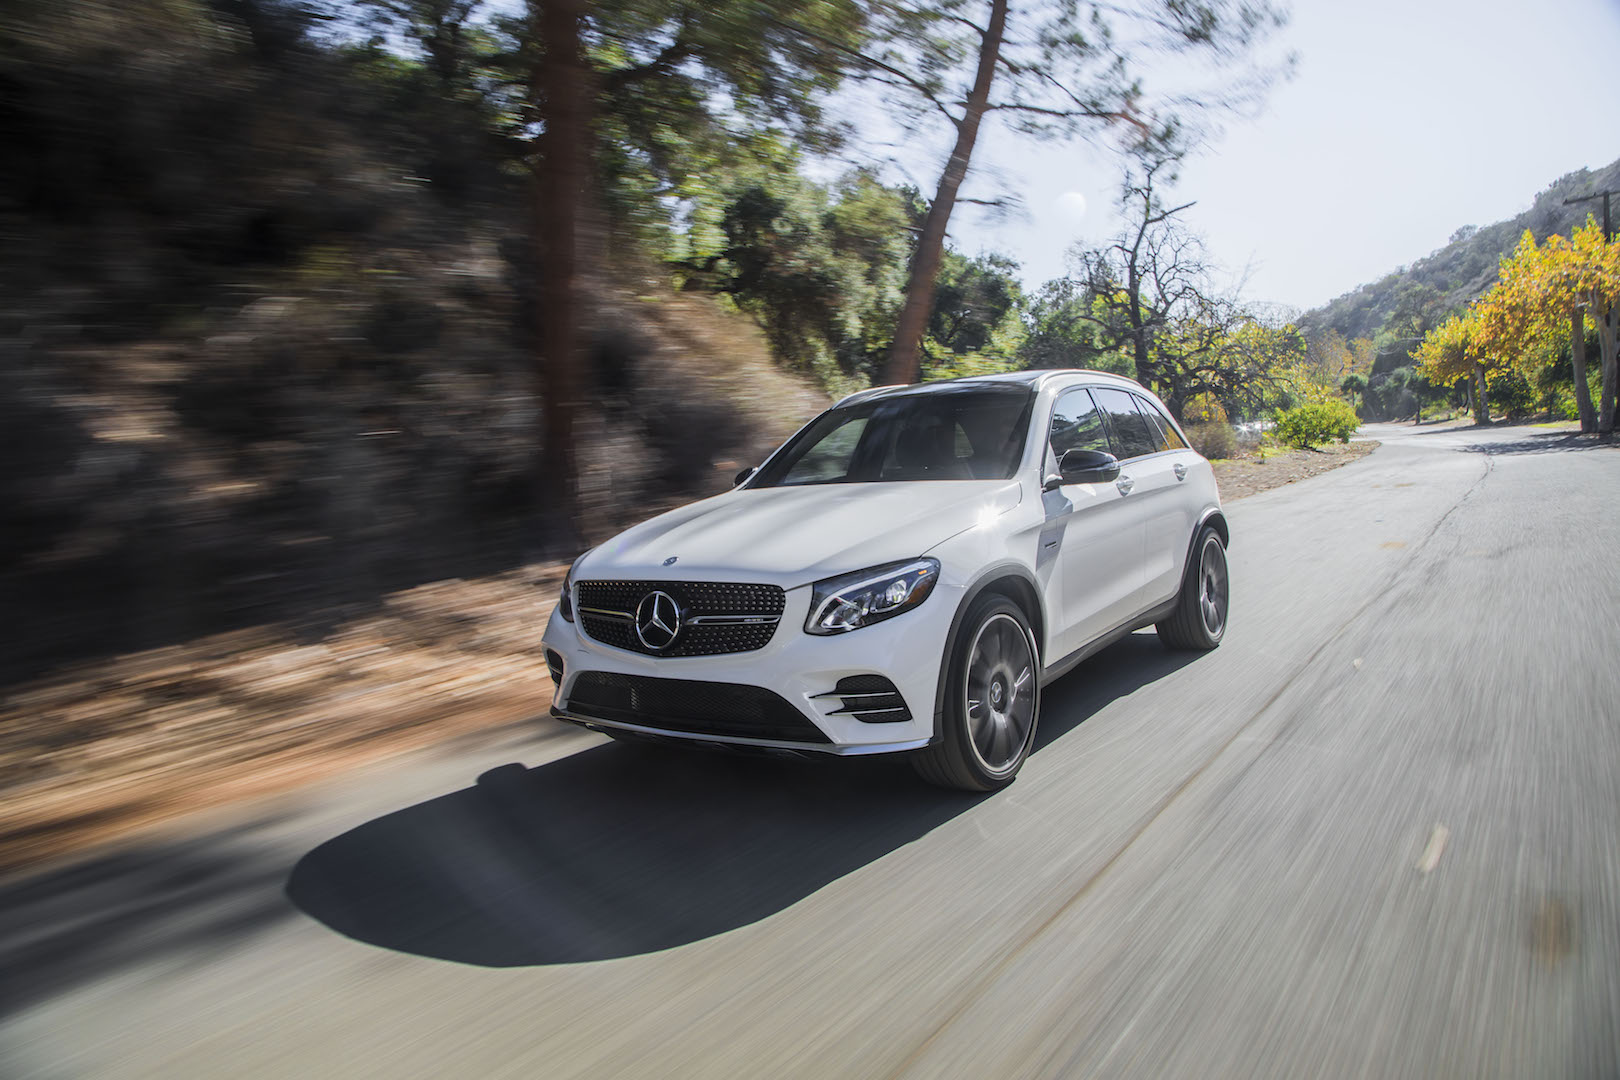 new and used mercedes benz glc class prices photos reviews specs the car connection. Black Bedroom Furniture Sets. Home Design Ideas